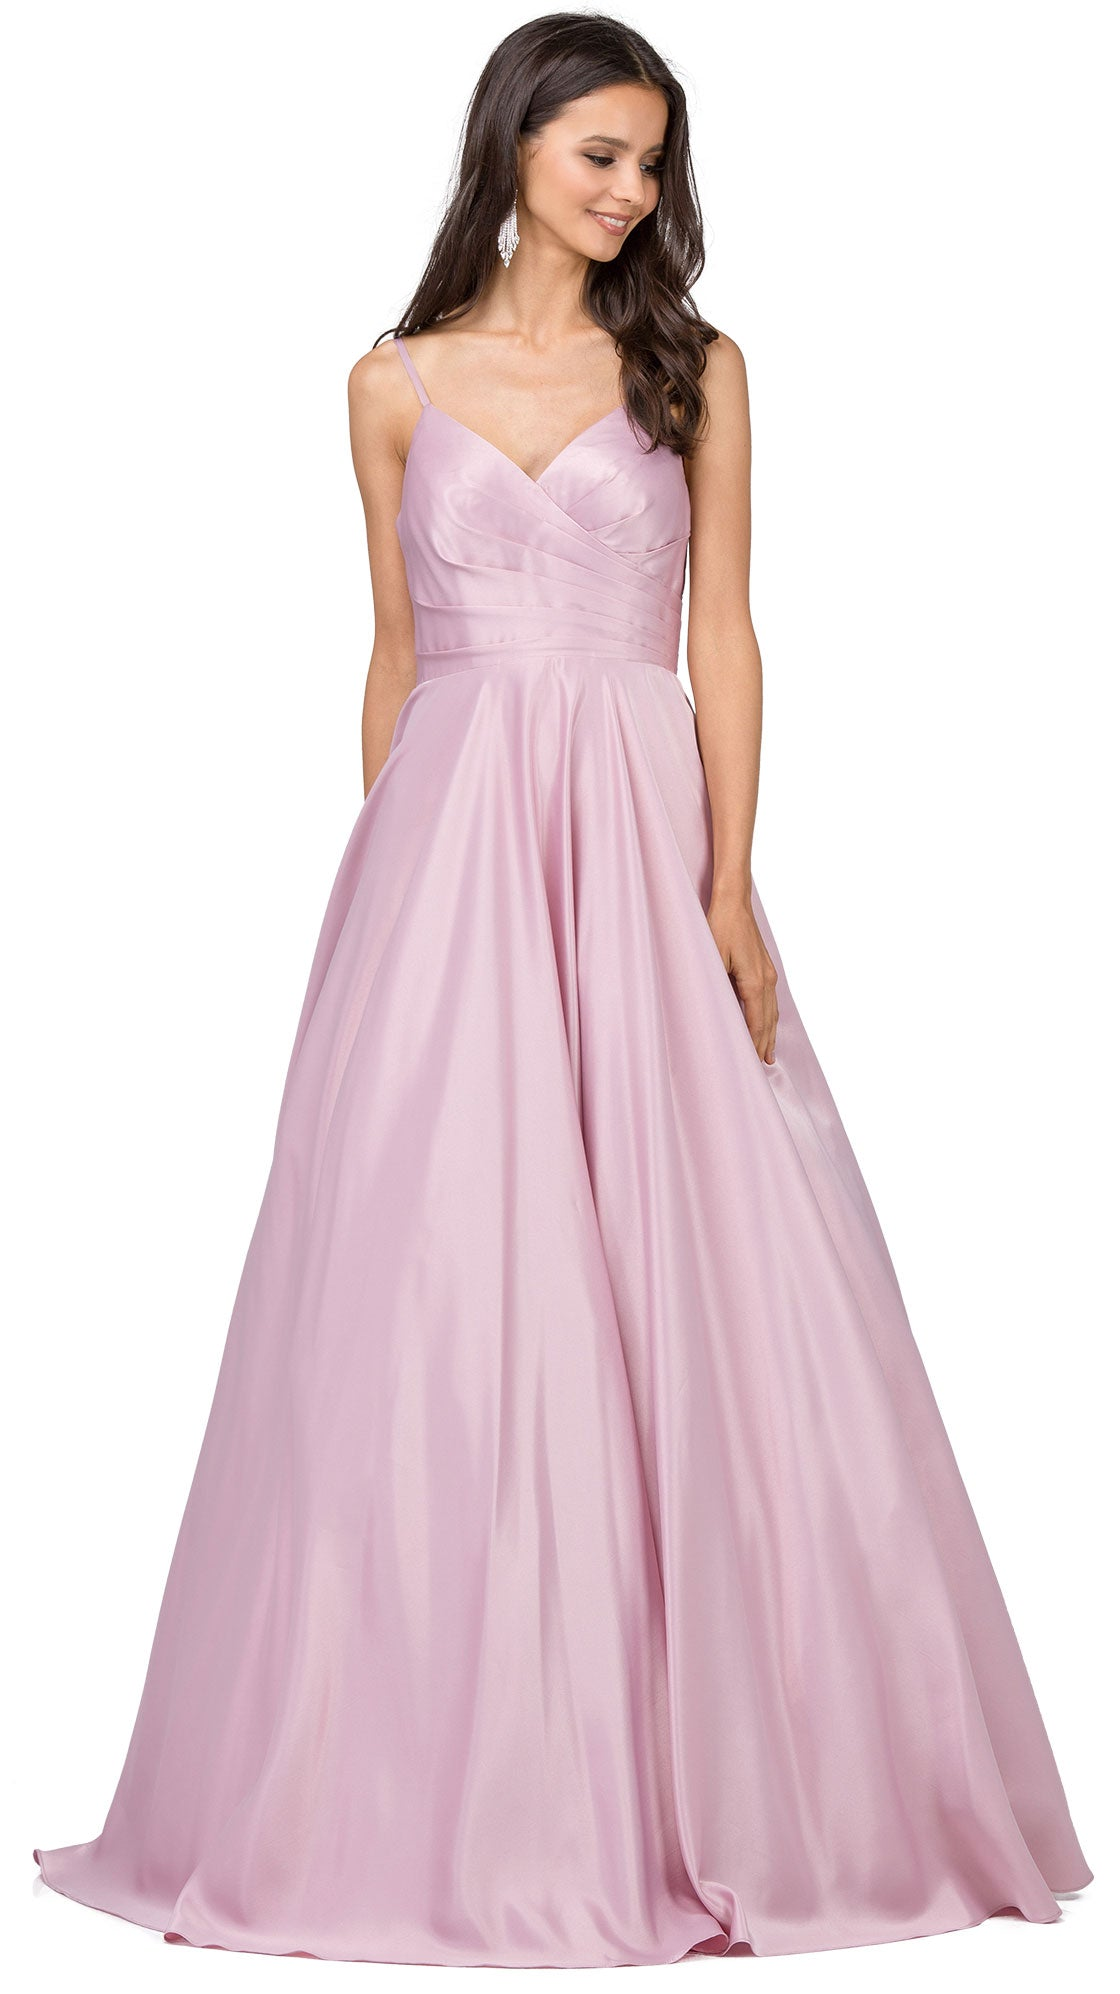 Image of V-neck Adjustable Straps Pleated Bust Long Prom Dress in Dusty Pink